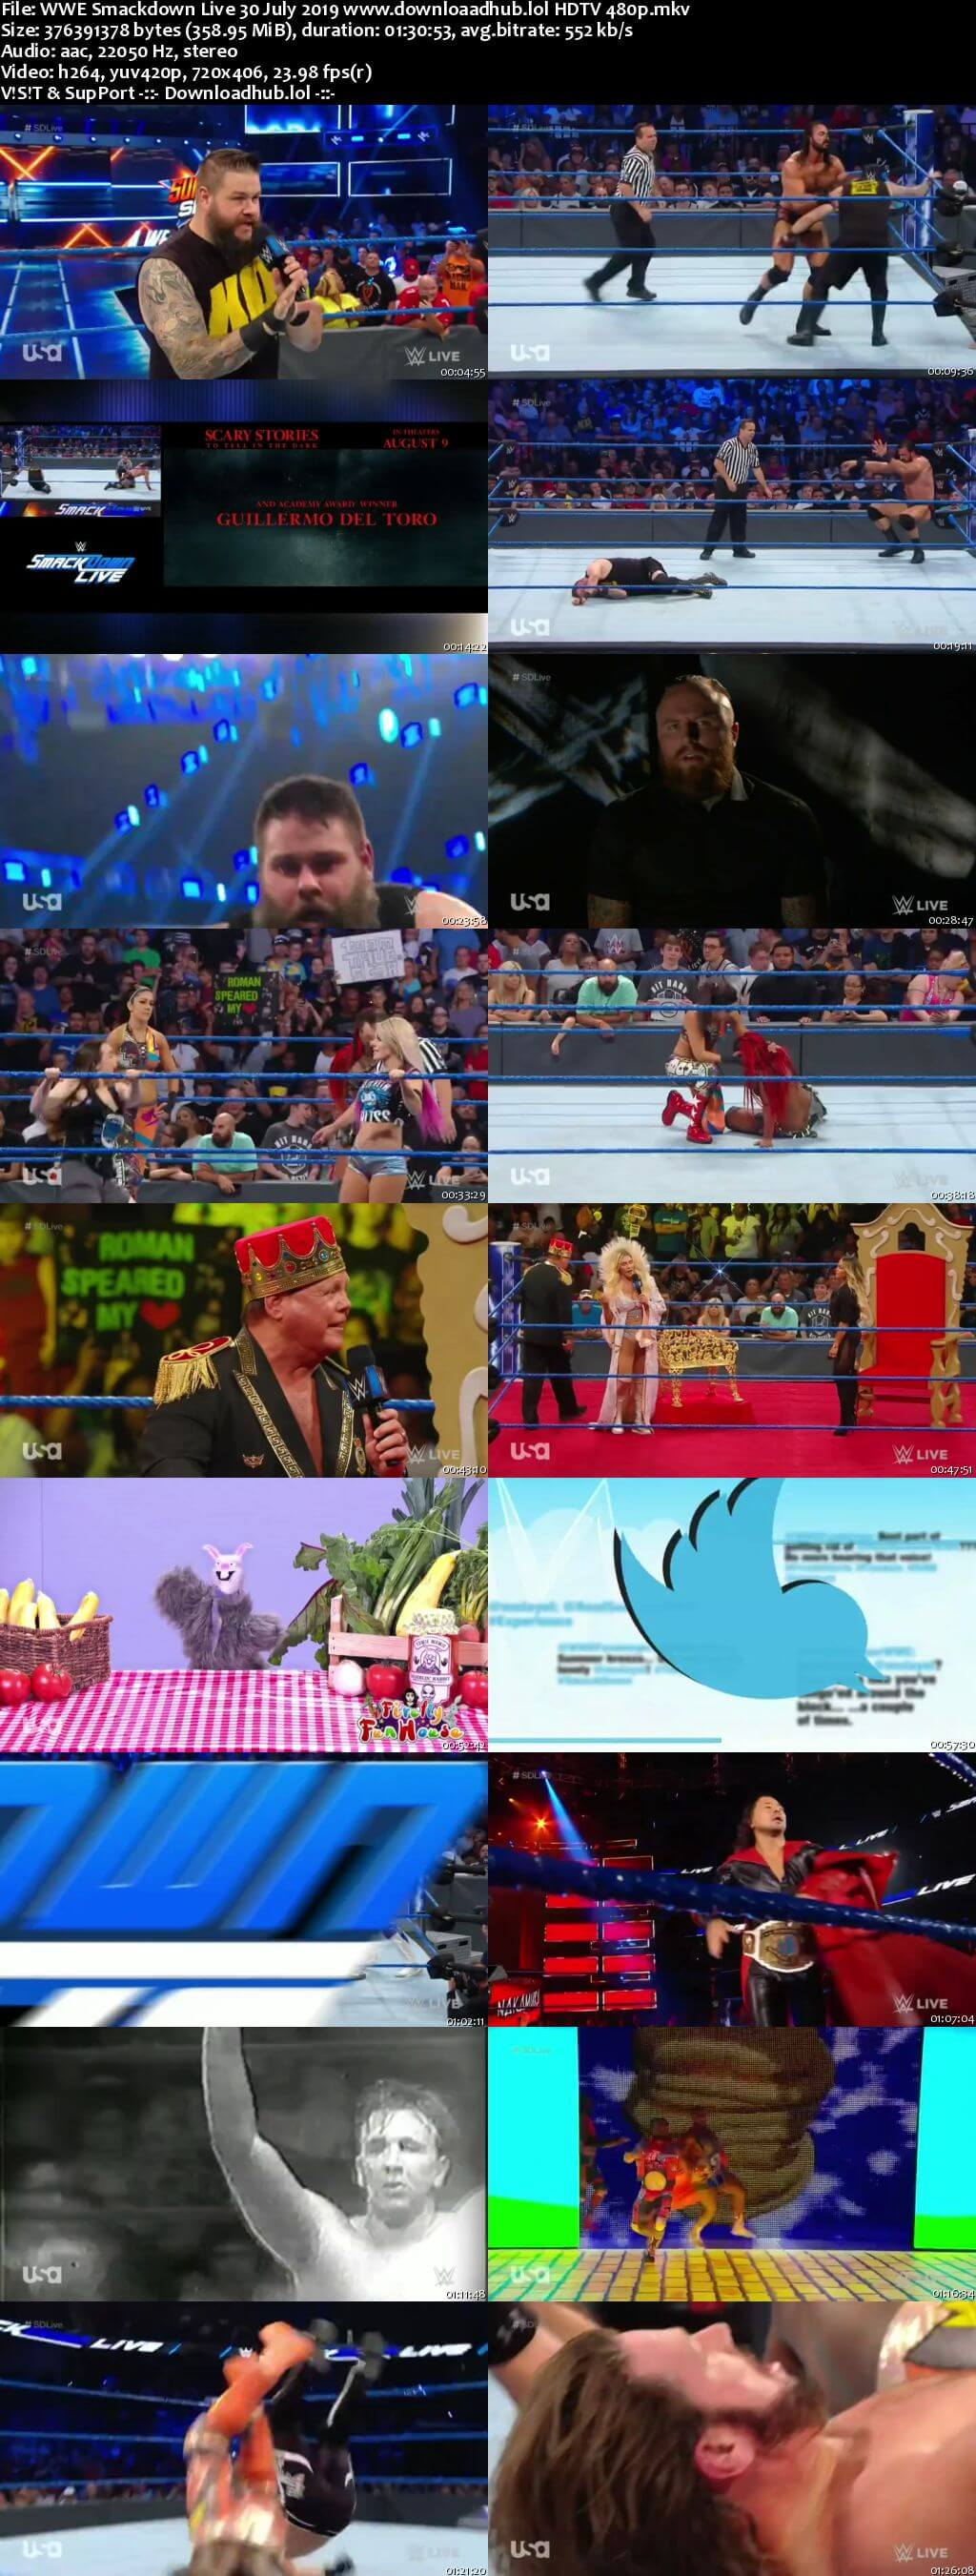 WWE Smackdown Live 30th July 2019 300MB HDTV 480p